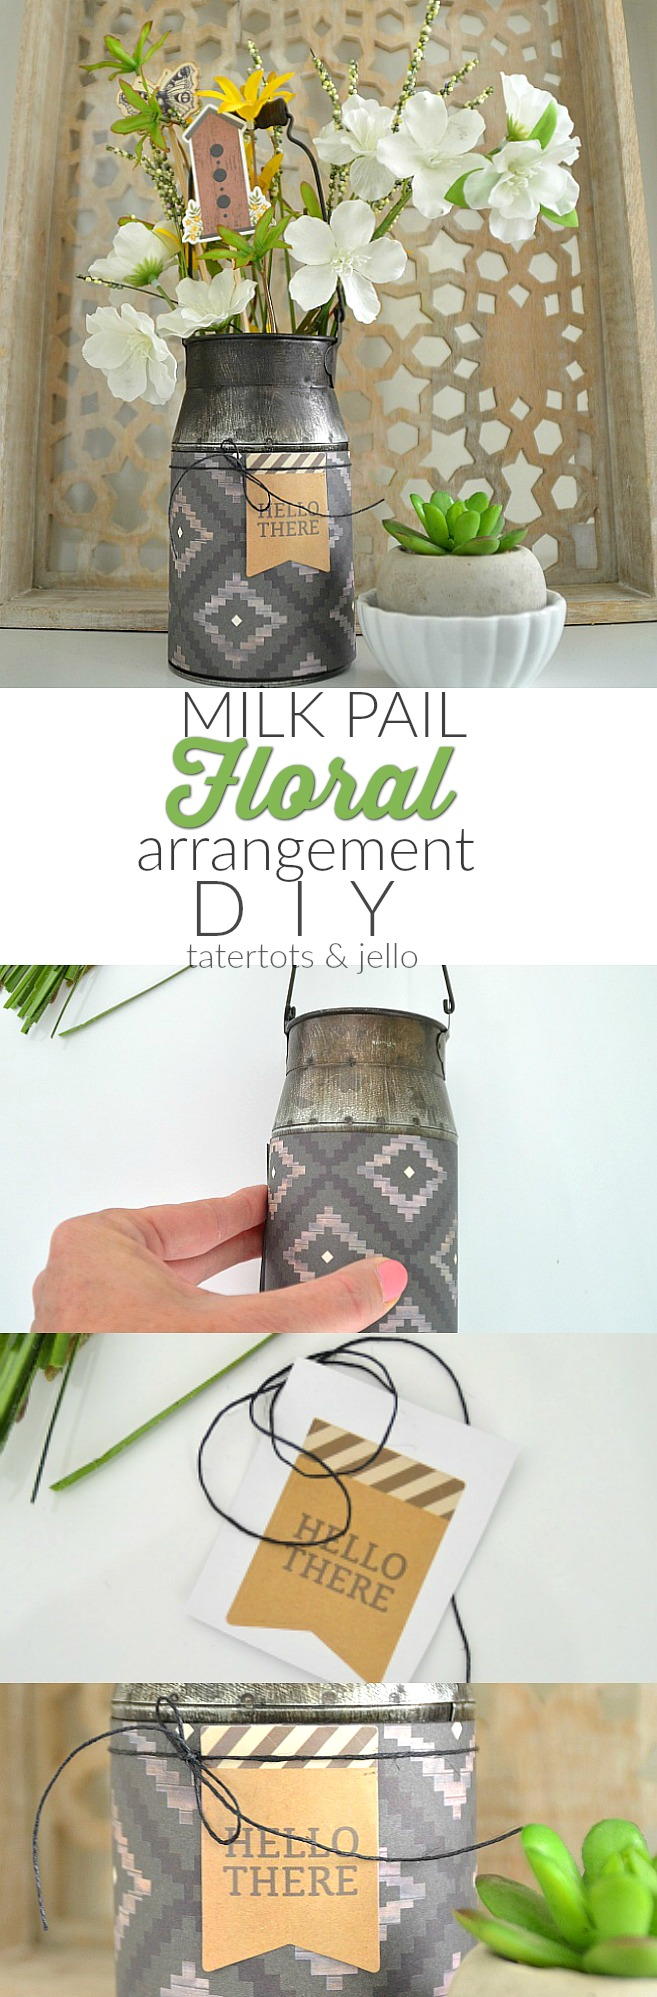 spring milk pail floral arrangement diy paper crafting tutorial